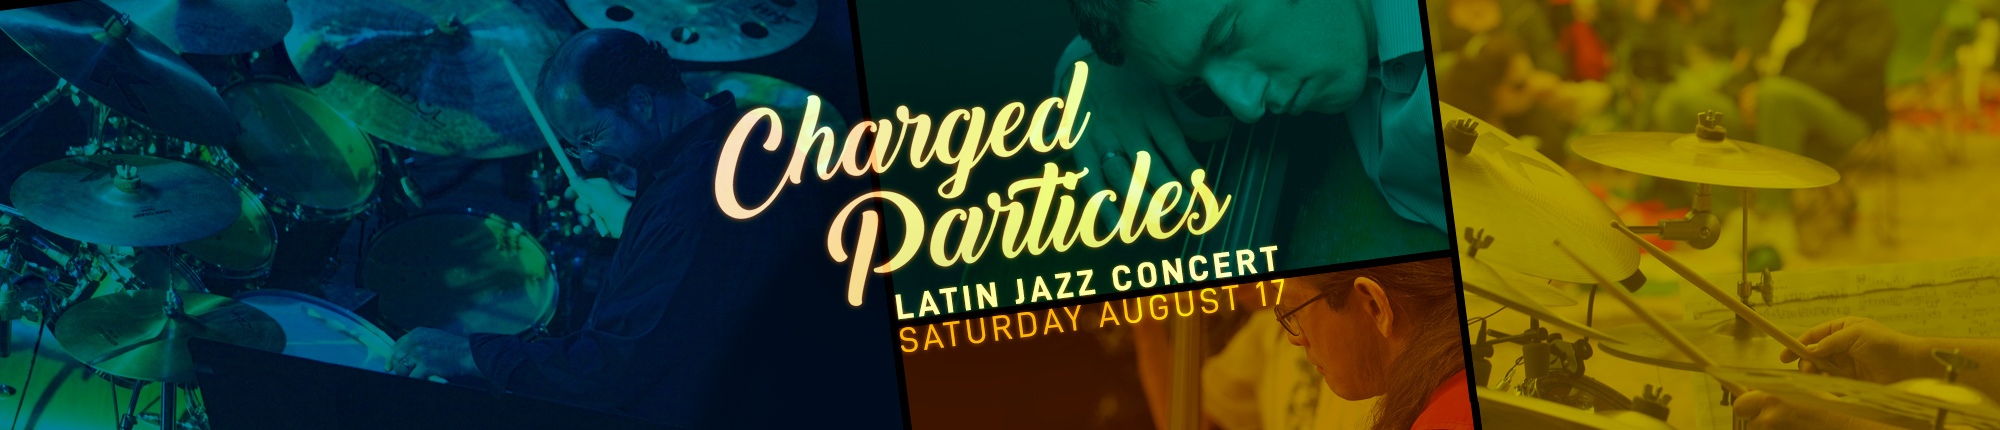 Charged Particles Latin Jazz Concert Saturday August 17